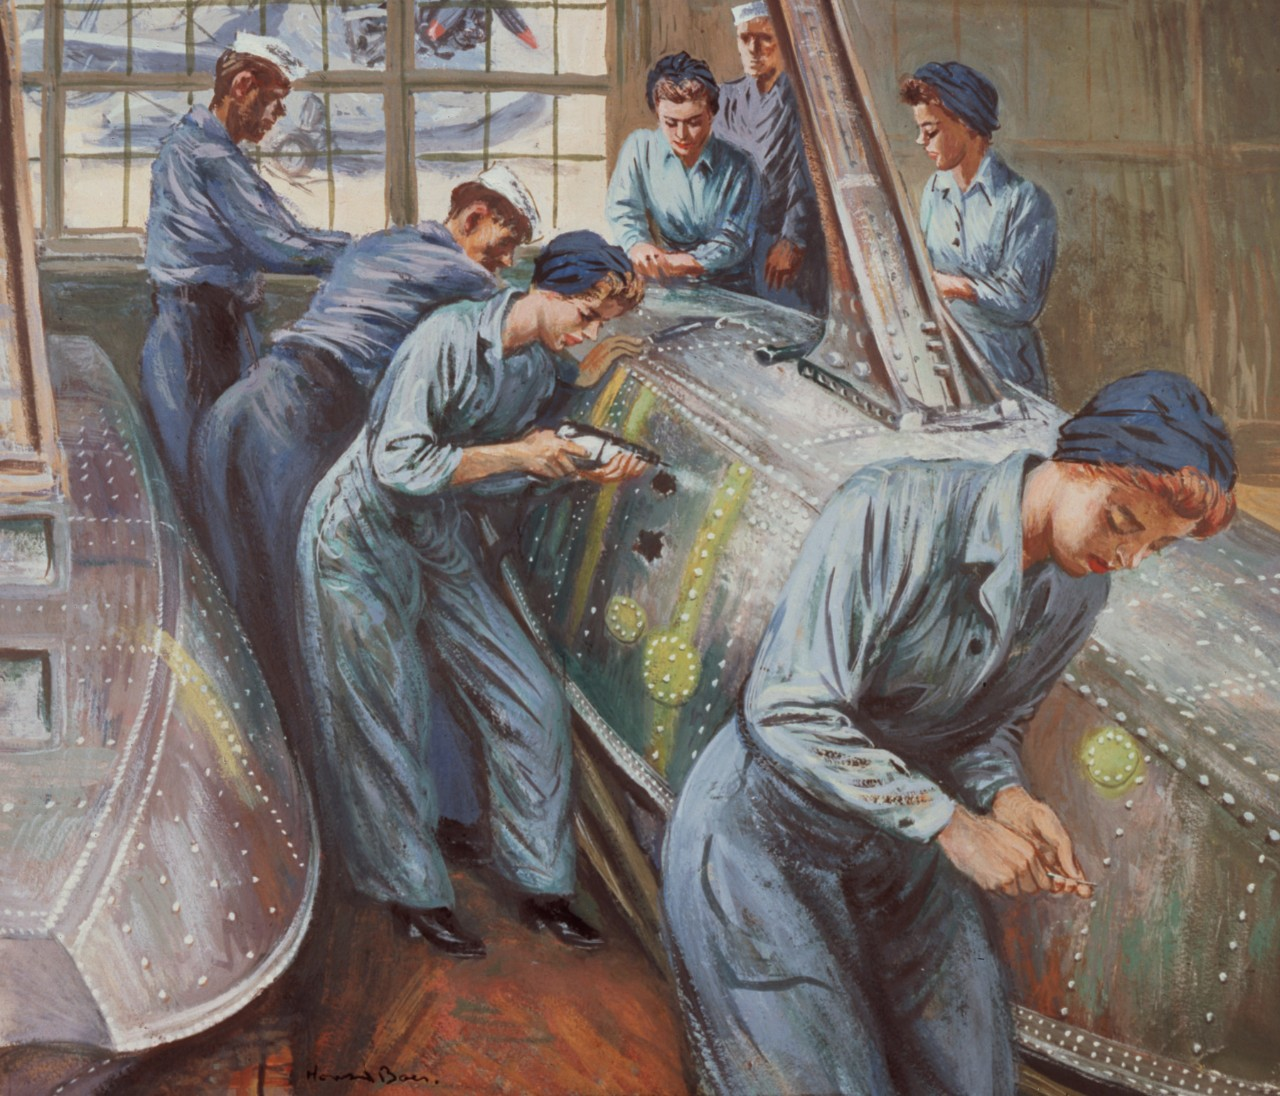 A group of WAVEs and sailors work on a plane